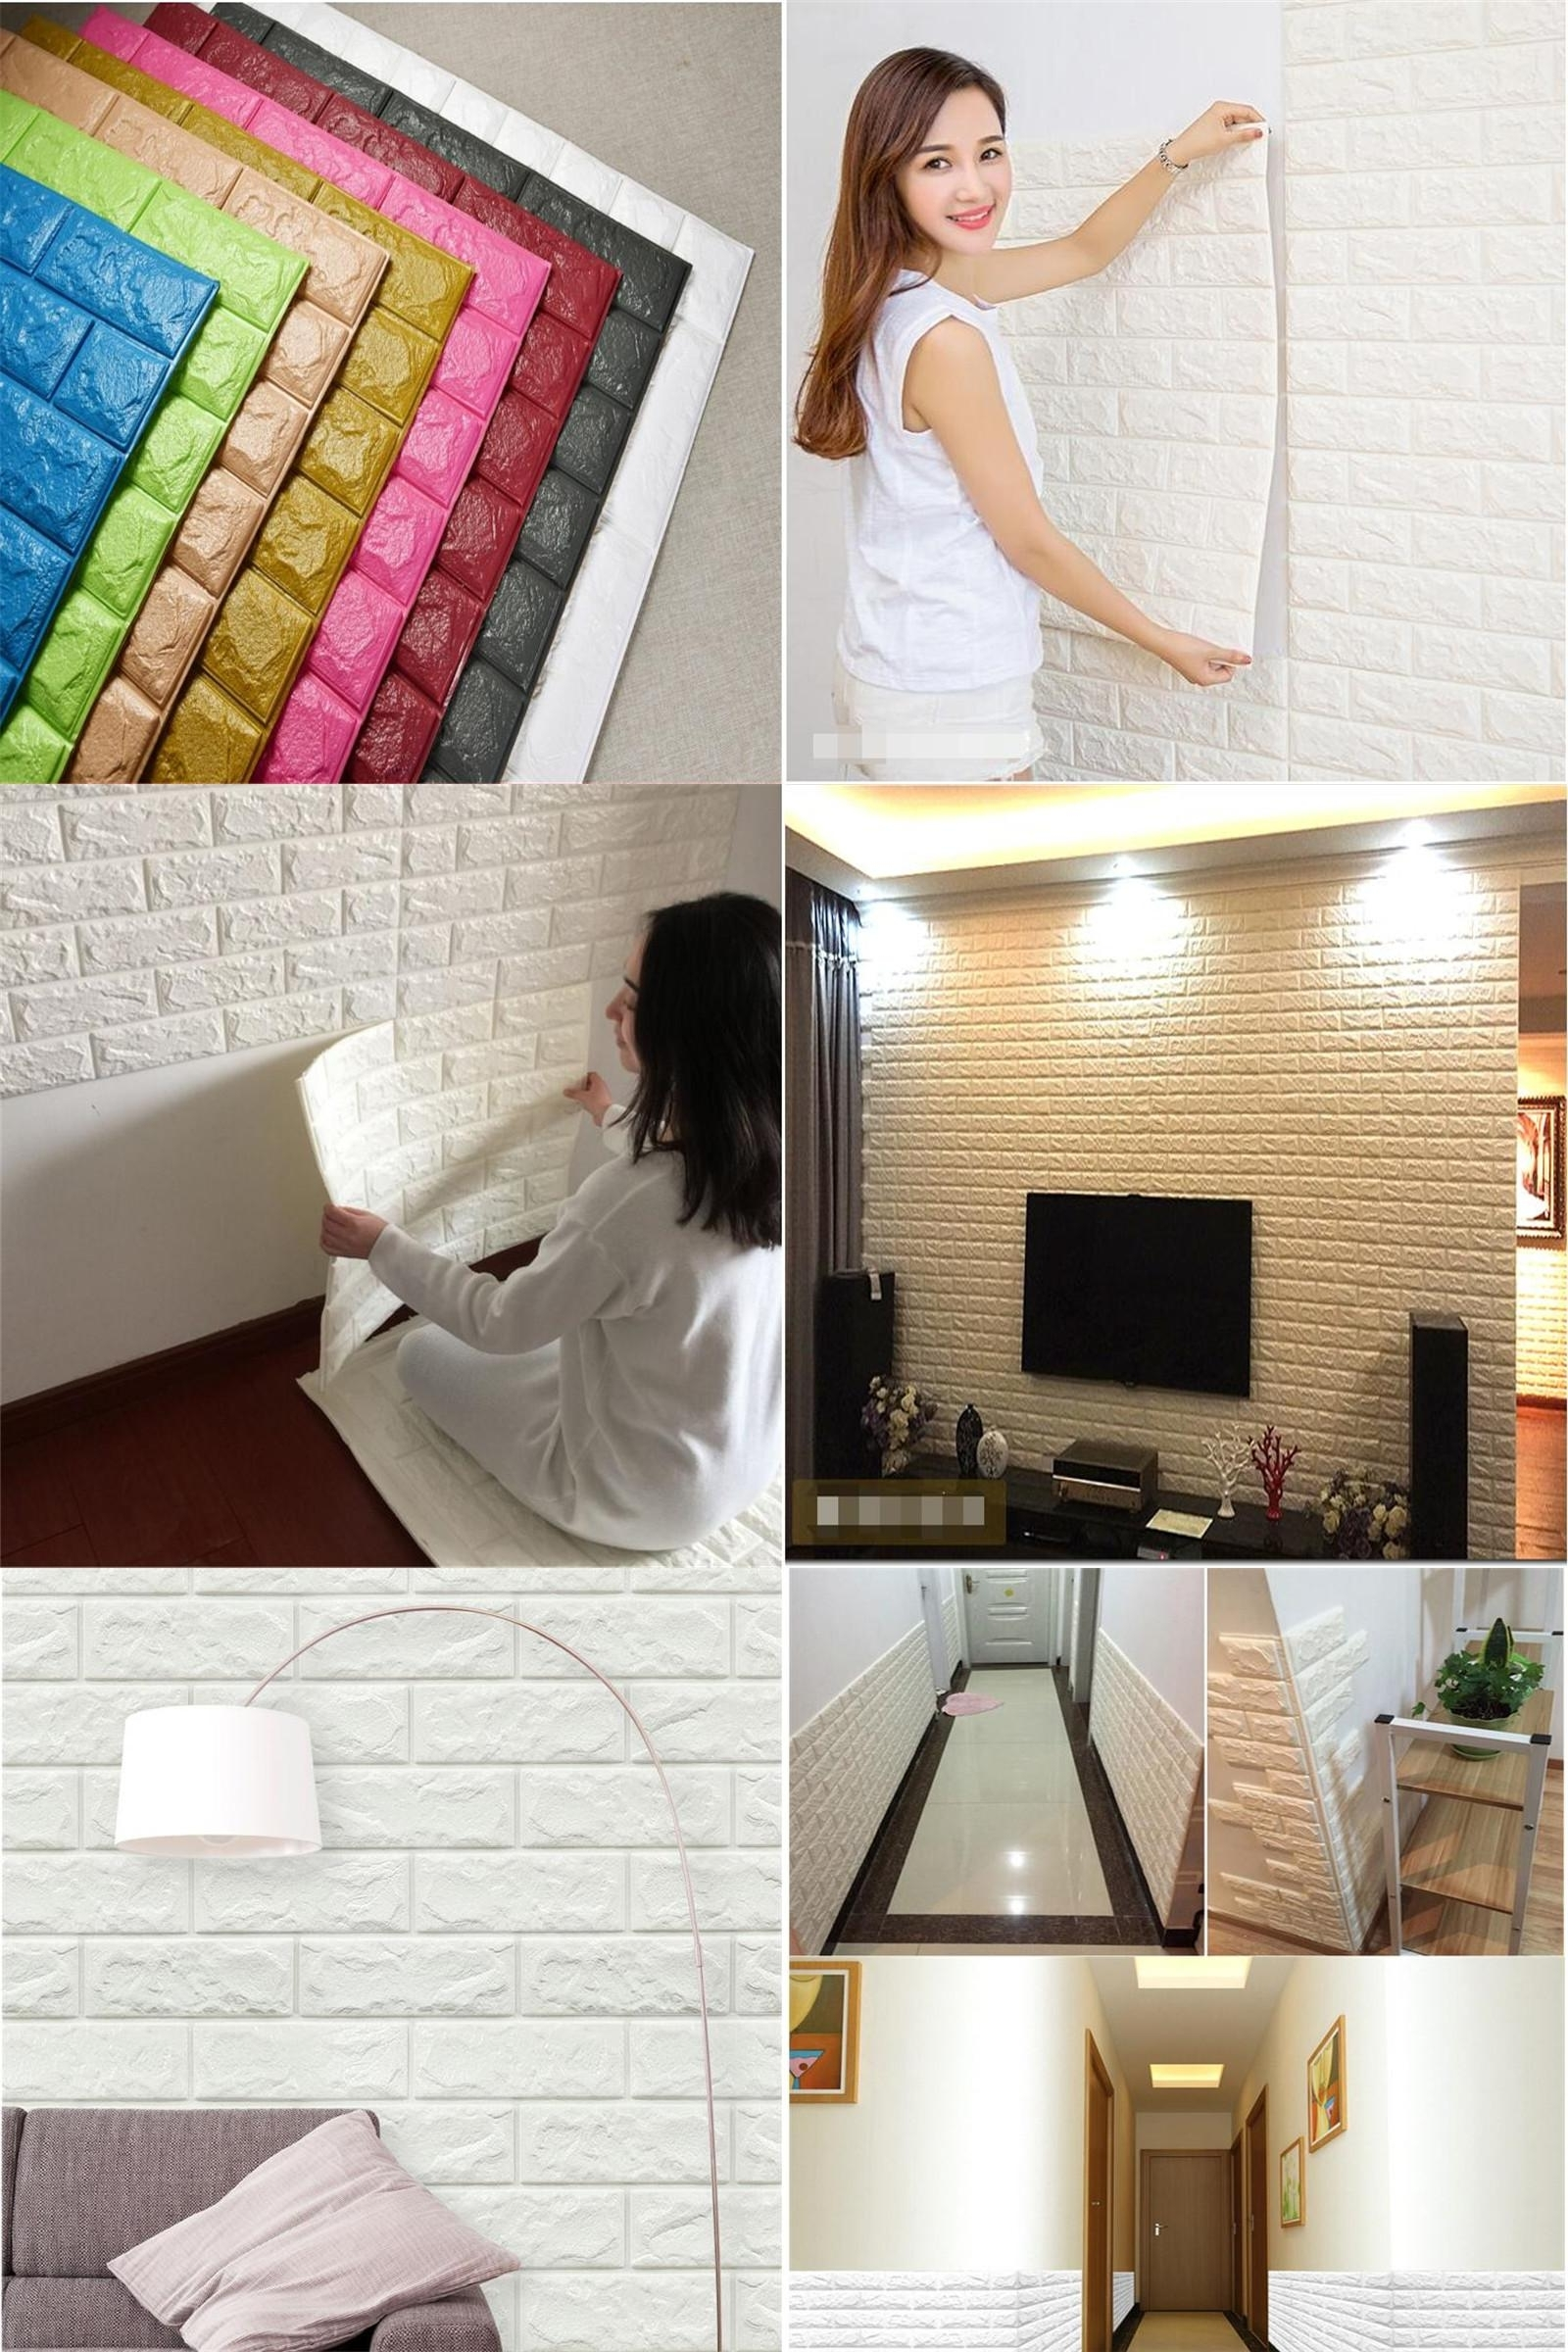 [%visit To Buy] Diy 3d Wall Stickers Art Brick Self Adhesive Intended For Fashionable 3d Brick Wall Art|3d Brick Wall Art For Most Recently Released Visit To Buy] Diy 3d Wall Stickers Art Brick Self Adhesive|best And Newest 3d Brick Wall Art With Visit To Buy] Diy 3d Wall Stickers Art Brick Self Adhesive|newest Visit To Buy] Diy 3d Wall Stickers Art Brick Self Adhesive Throughout 3d Brick Wall Art%] (View 14 of 15)